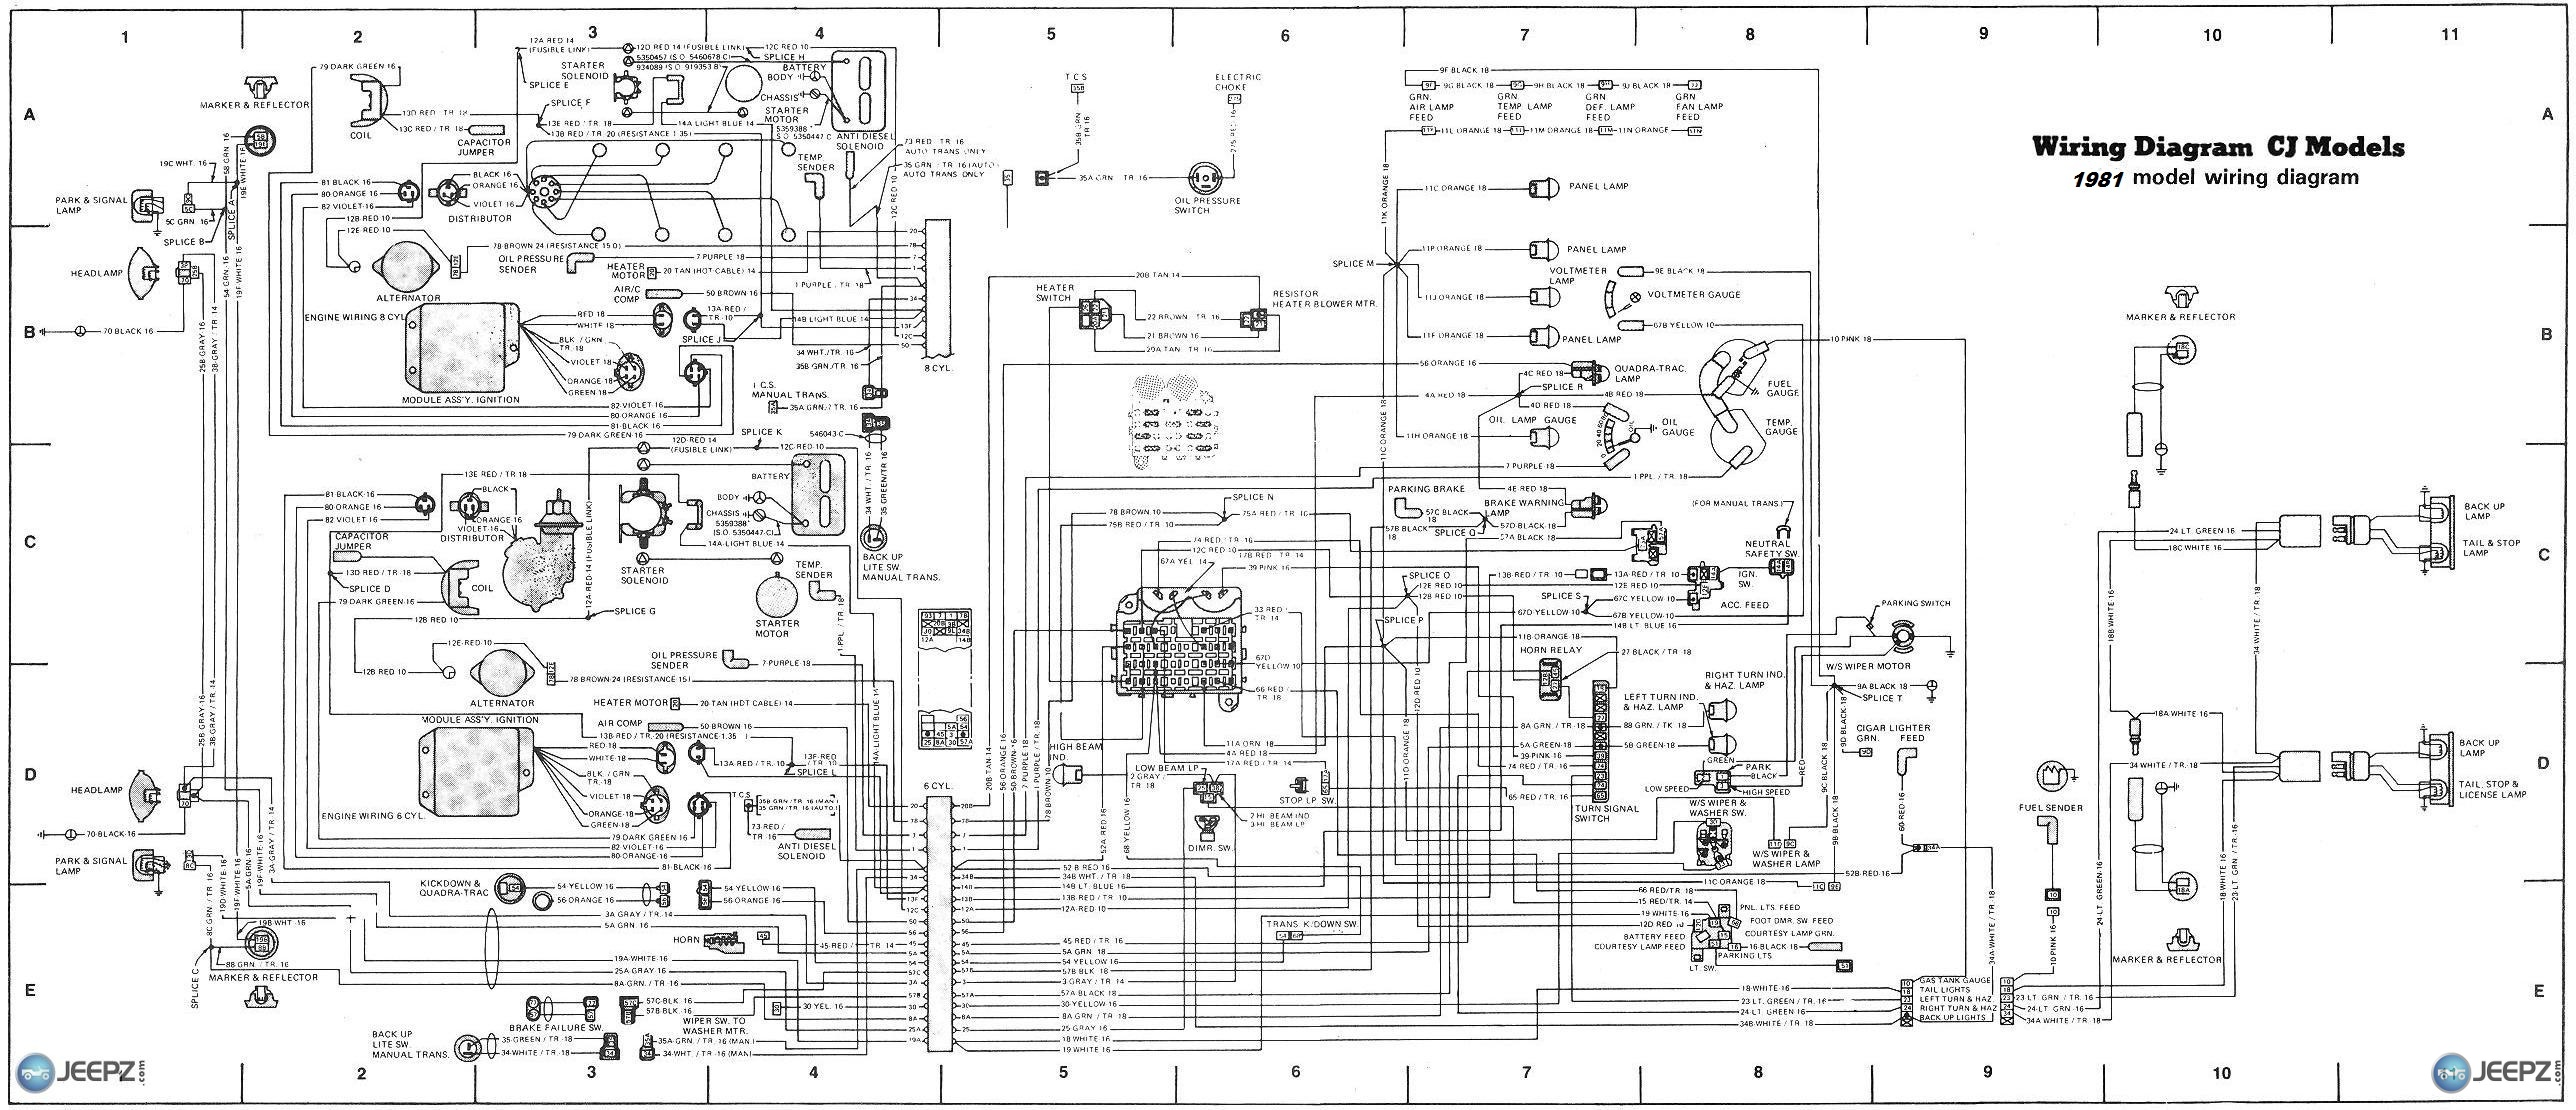 7993d1301845049 cj 7 wire diagram cj wiring diagram 1981 wiring diagrams \u2022 j squared co Basic Electrical Wiring Diagrams at webbmarketing.co